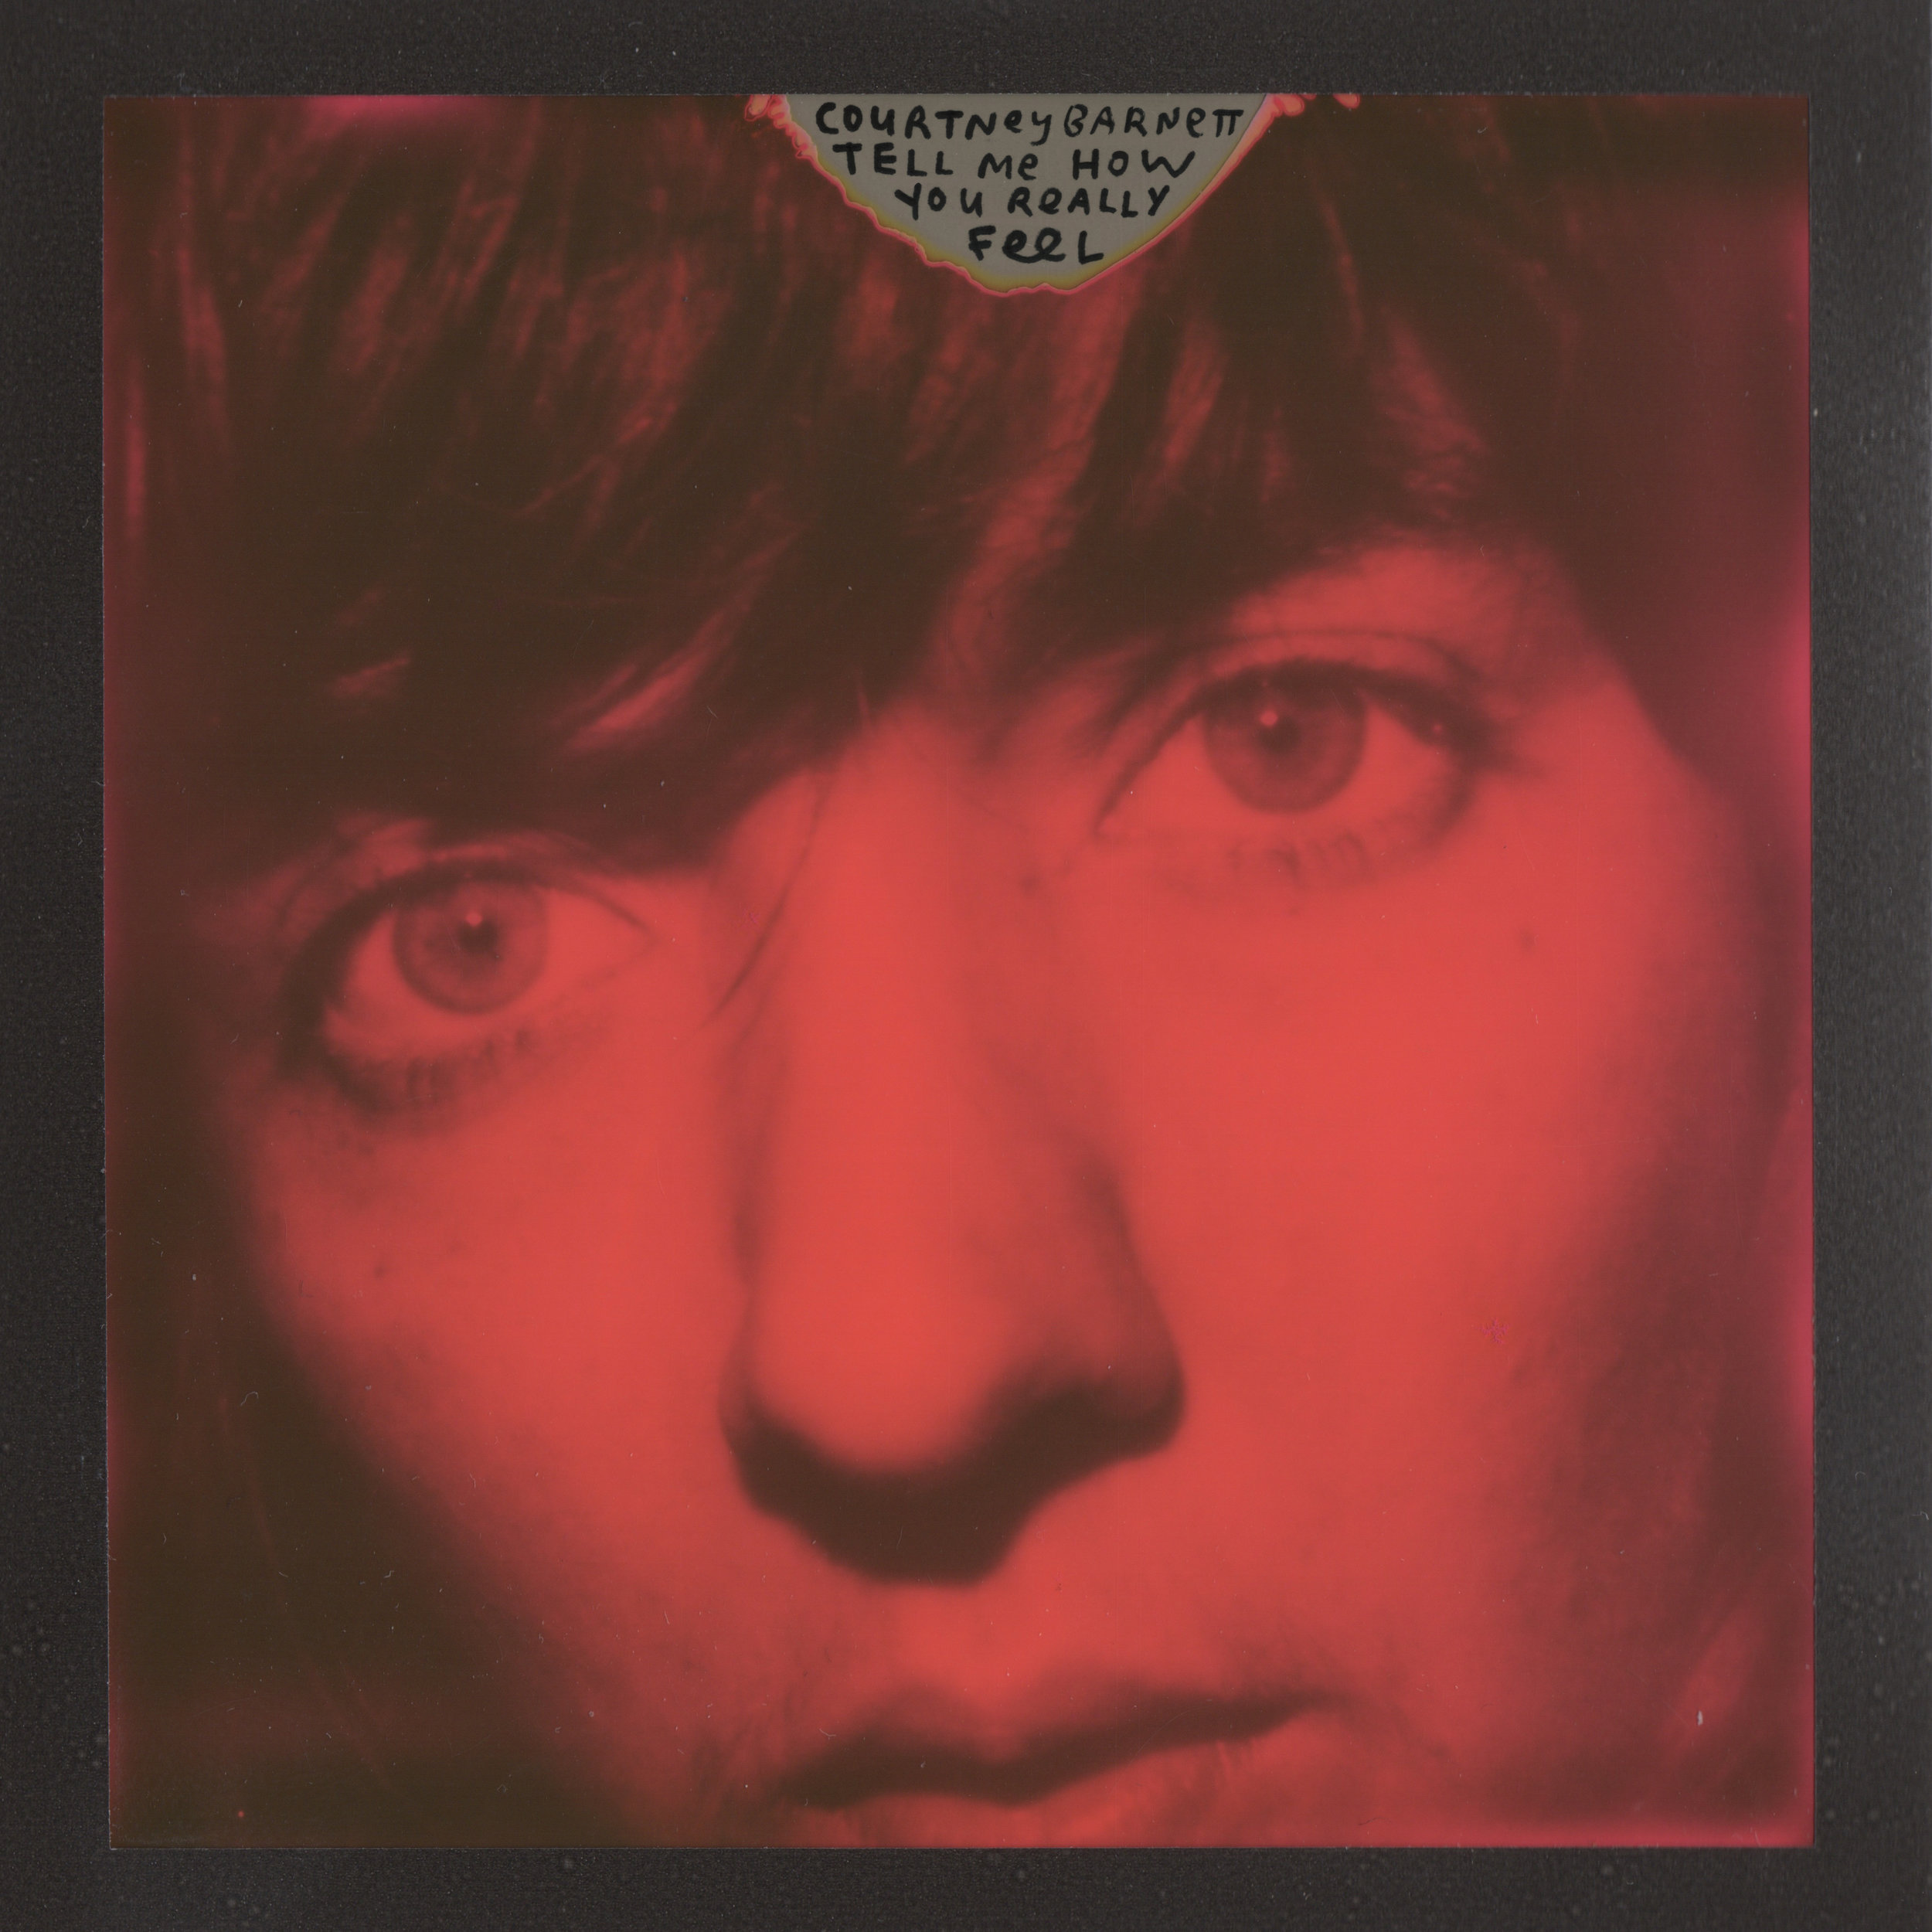 Courtney Barnett 'Tell Me How You Really Feel'